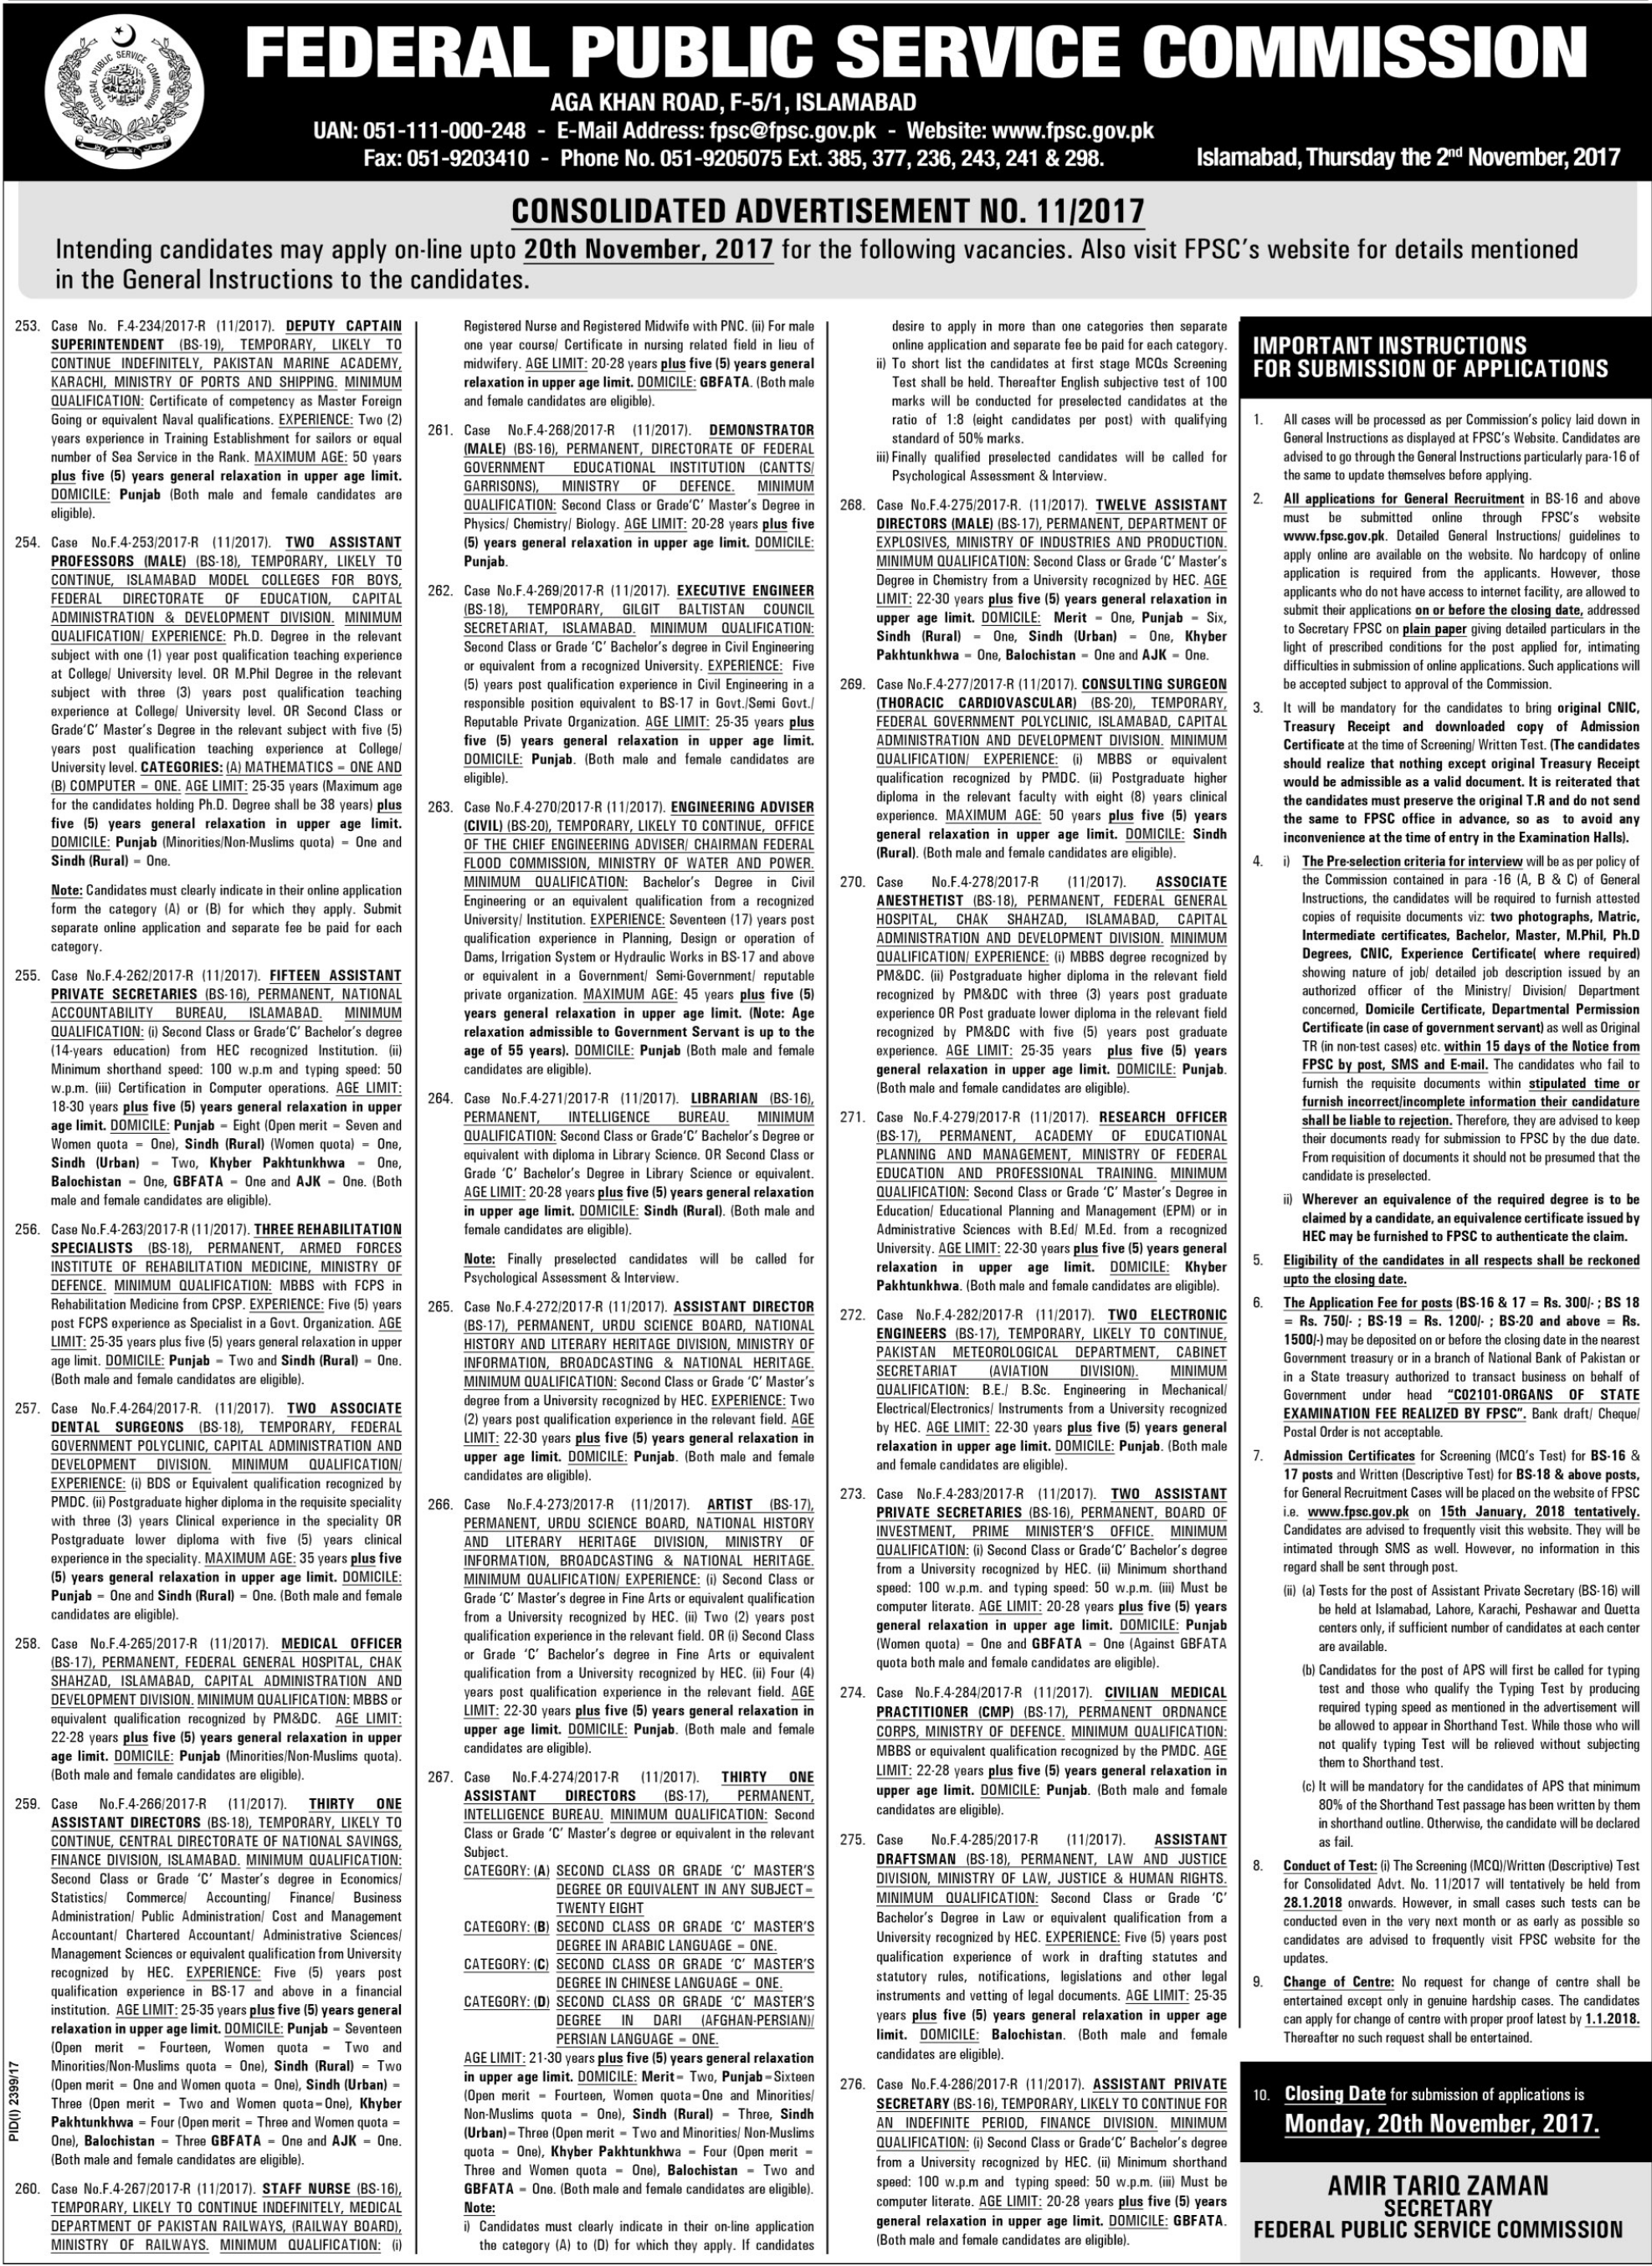 FPSC Jobs Federal Public Service Commission